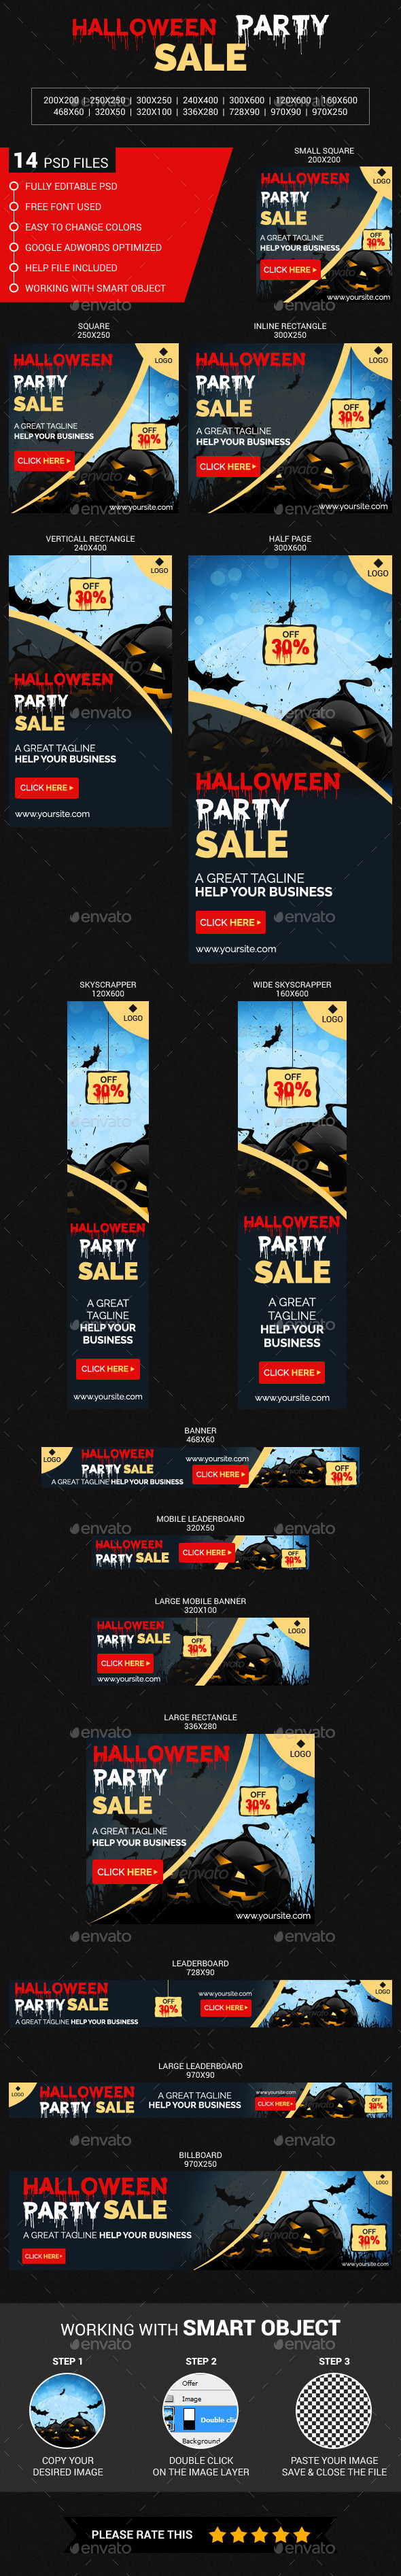 Halloween Party Sale - Banners & Ads Web Elements